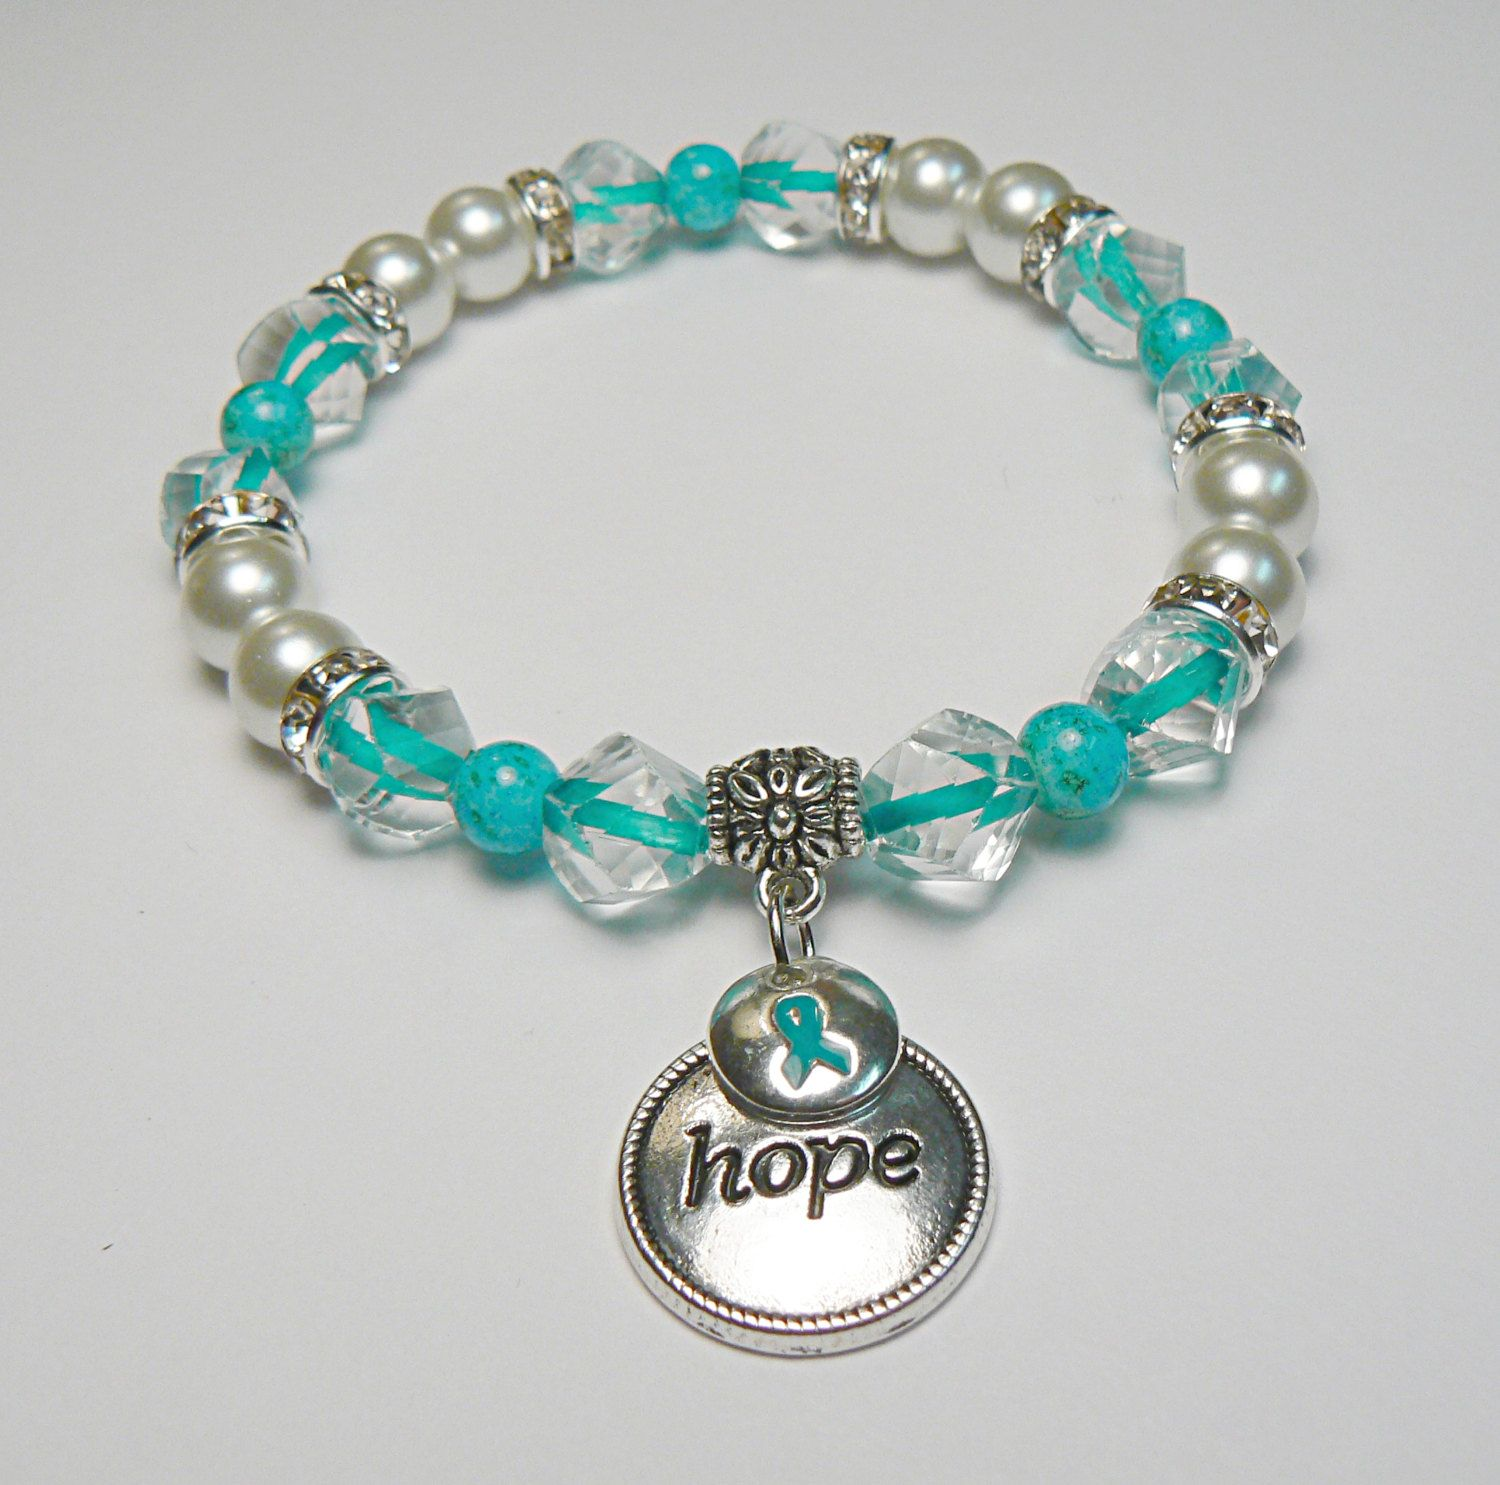 fragile anti awareness ocd polycystic disease bullying kidney bracelet scleroderma pin ovarian pos cancer x